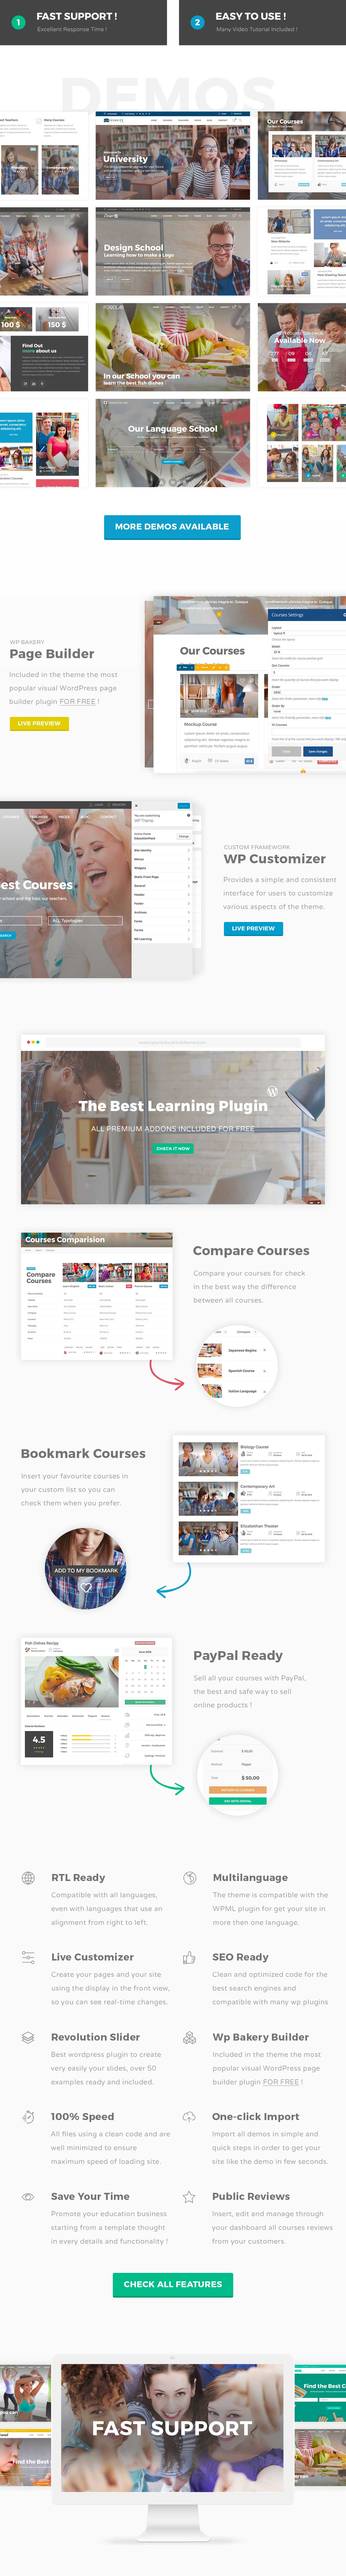 Education Pack - Education Learning Theme WP - 1